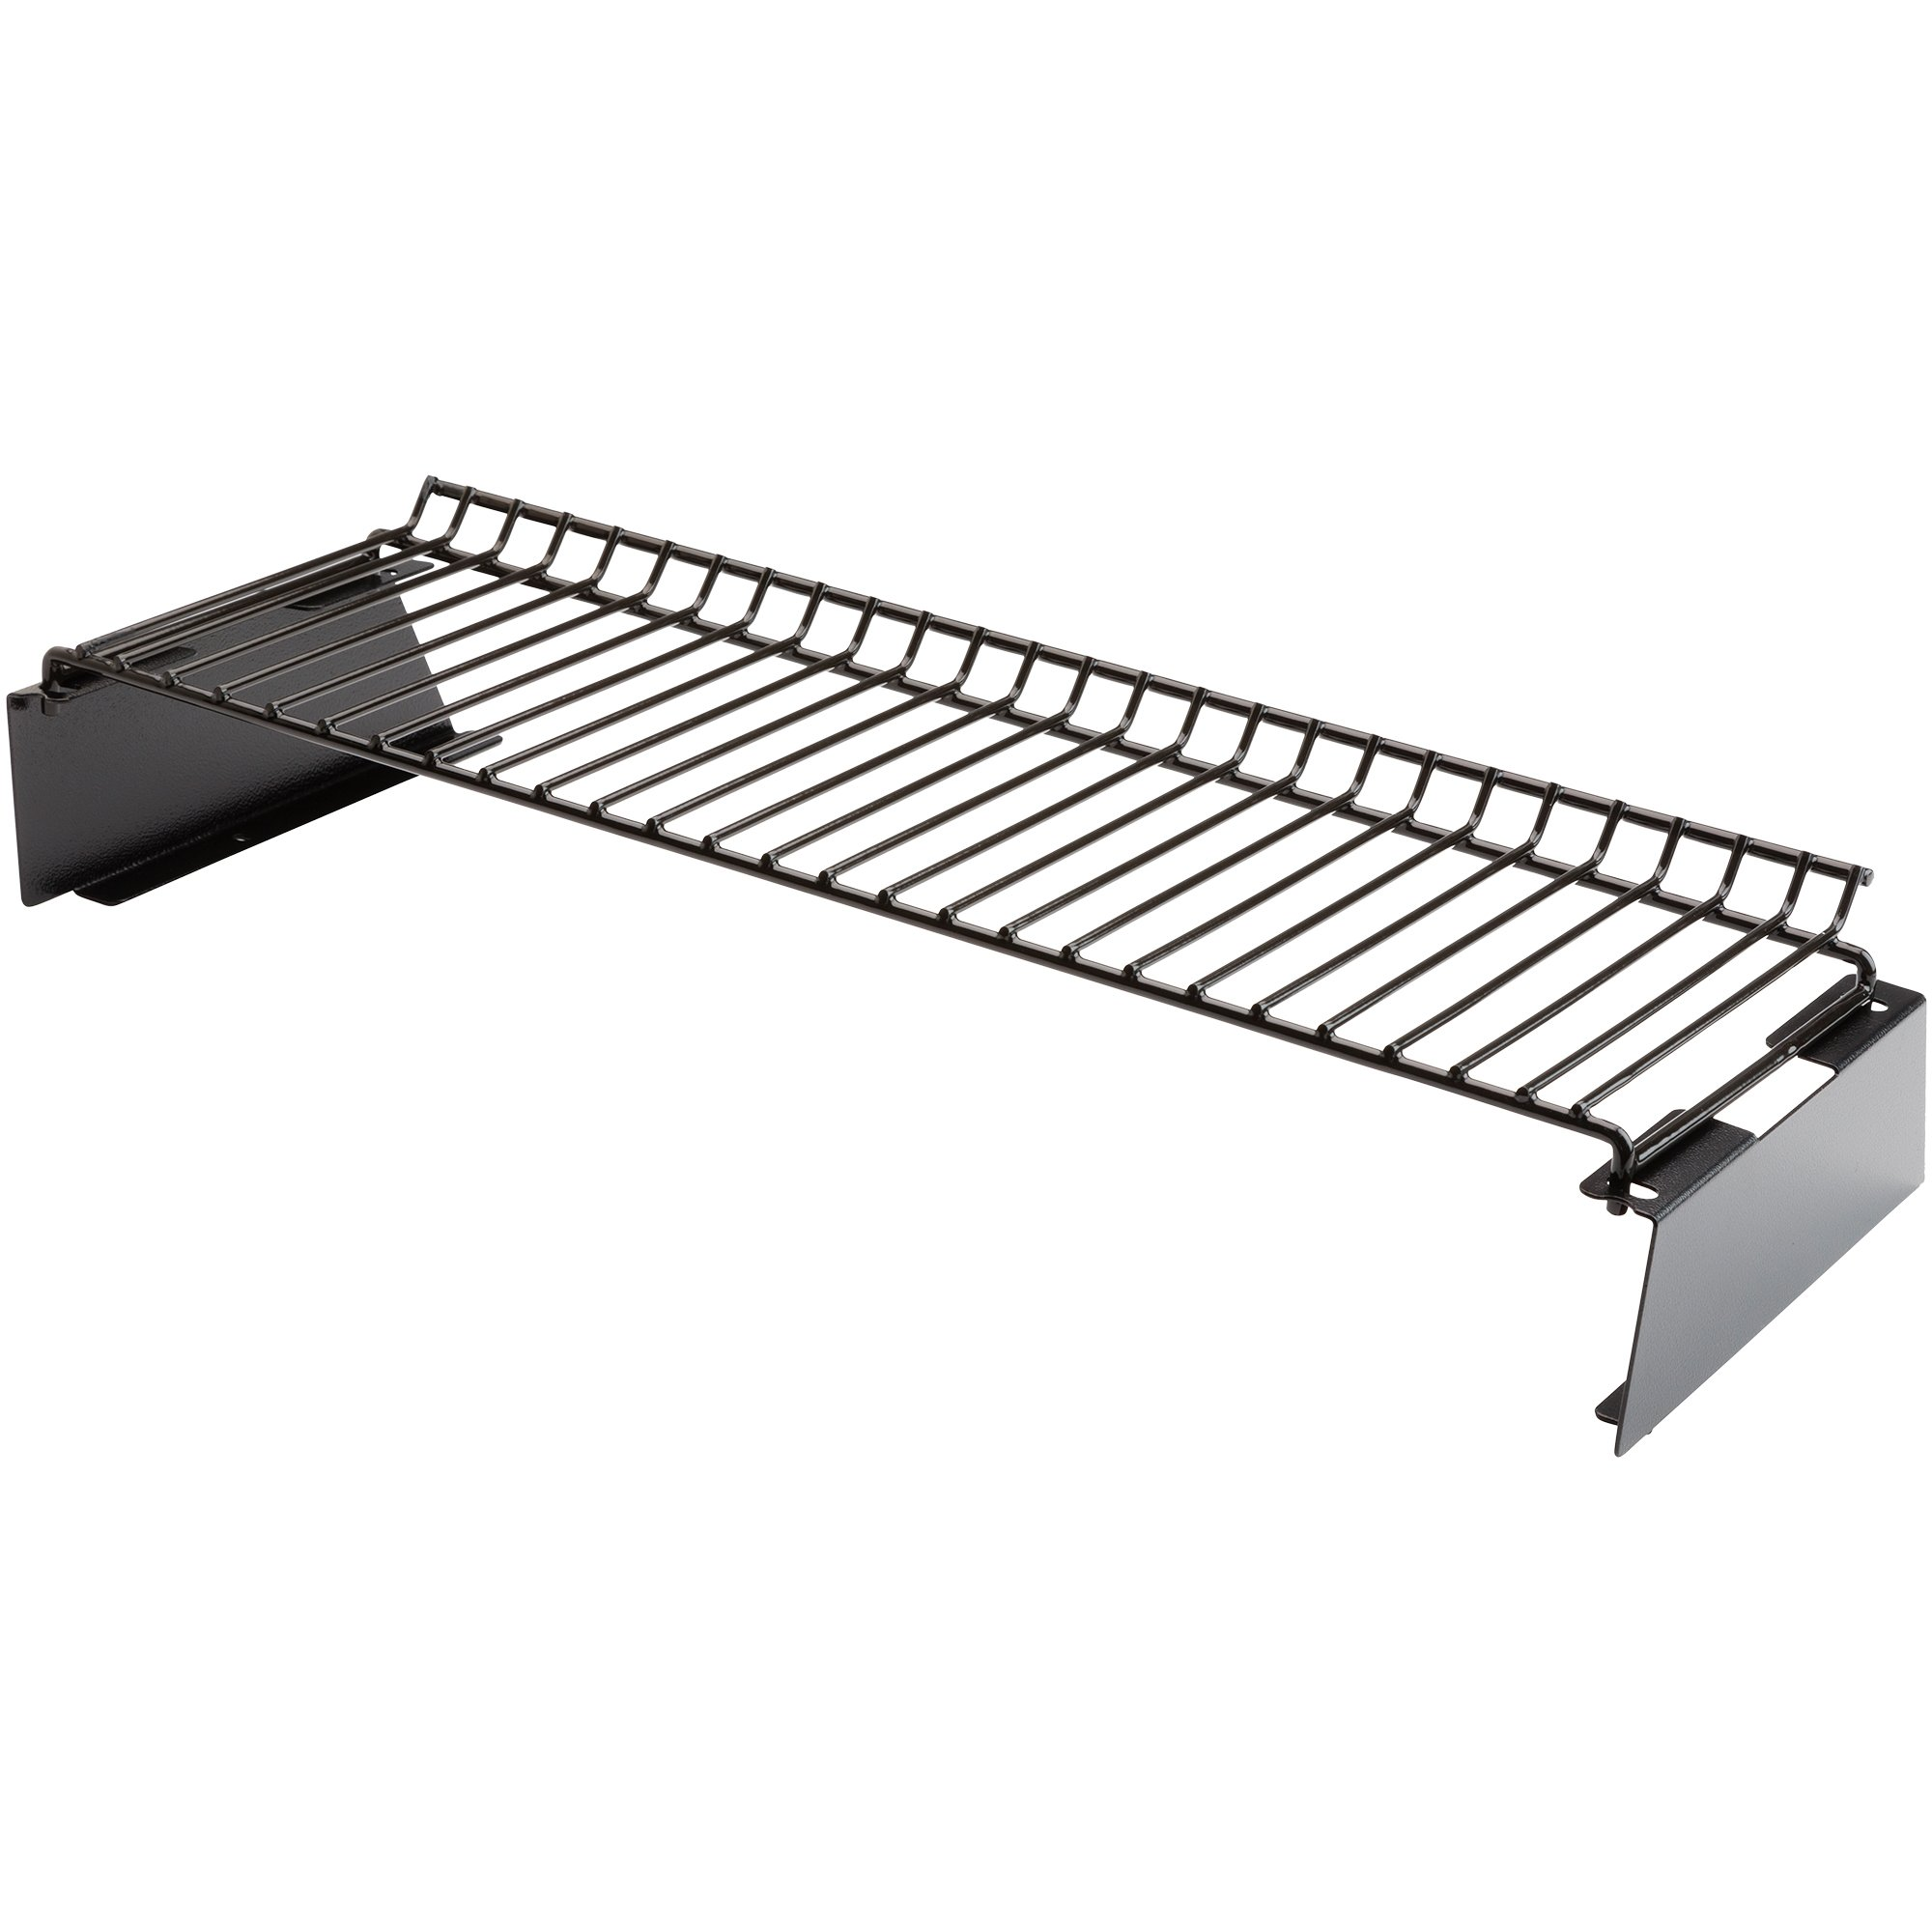 Traeger BAC351 22 Series Grill Rack by Traeger